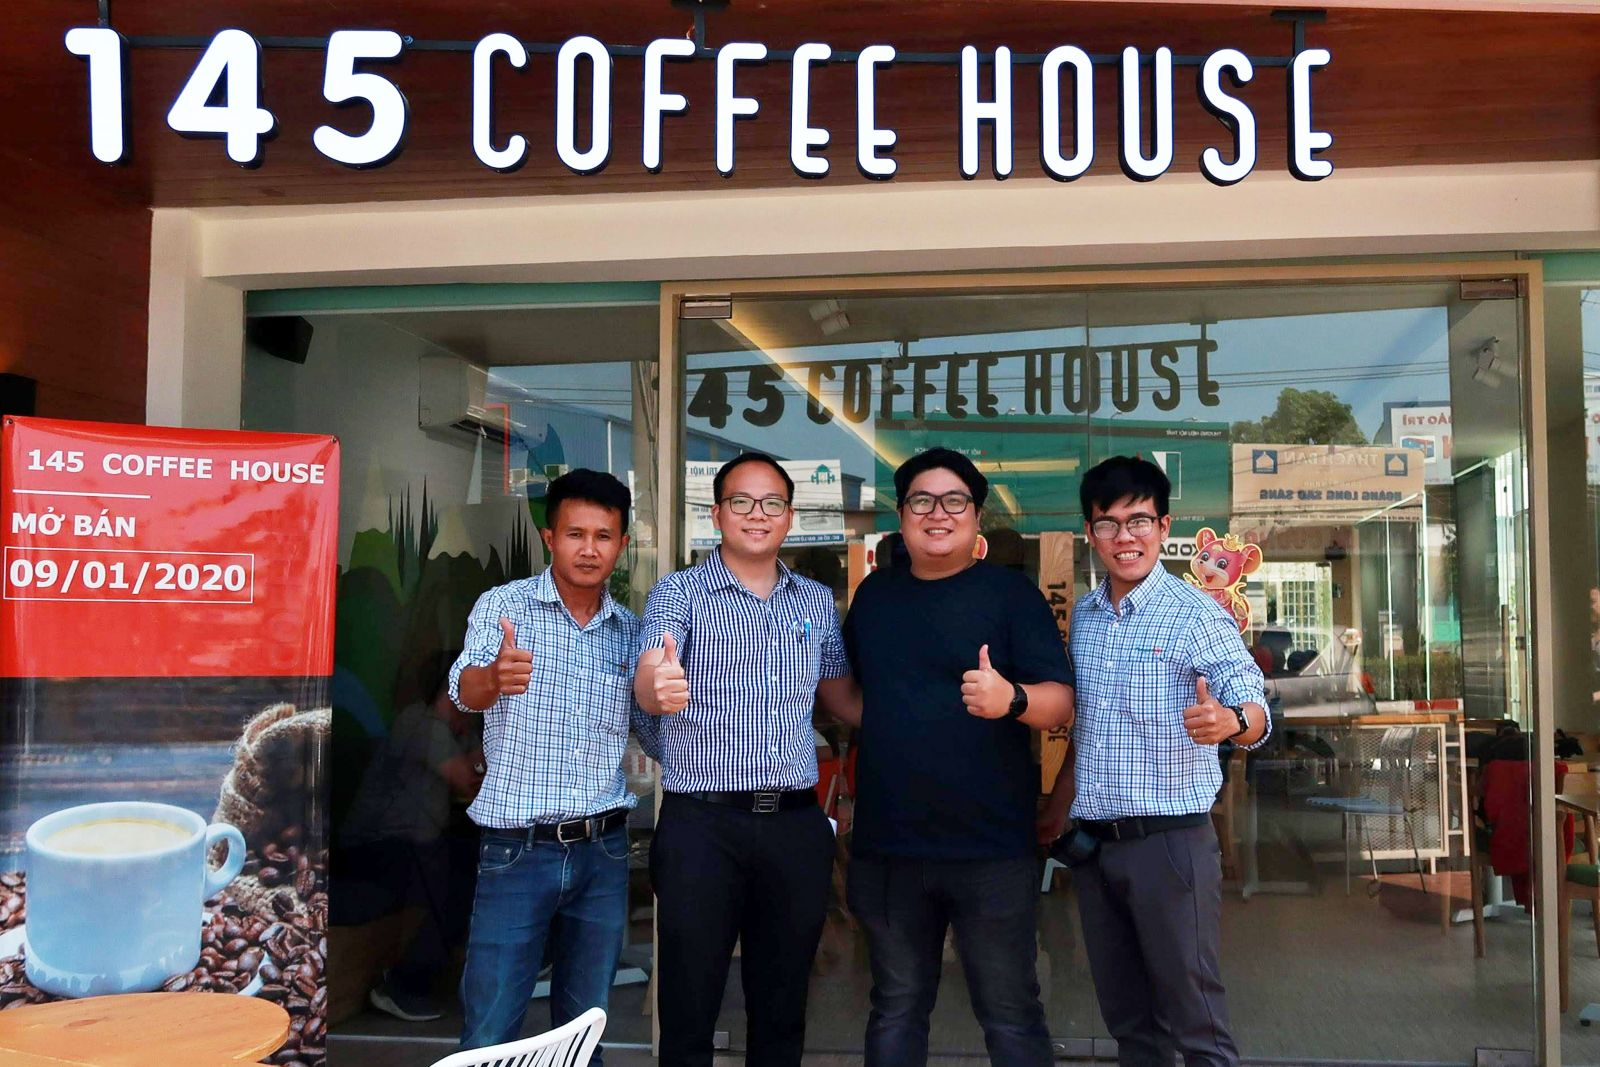 noi-that-quan-cafe-145-coffee-house-binh-duong-1